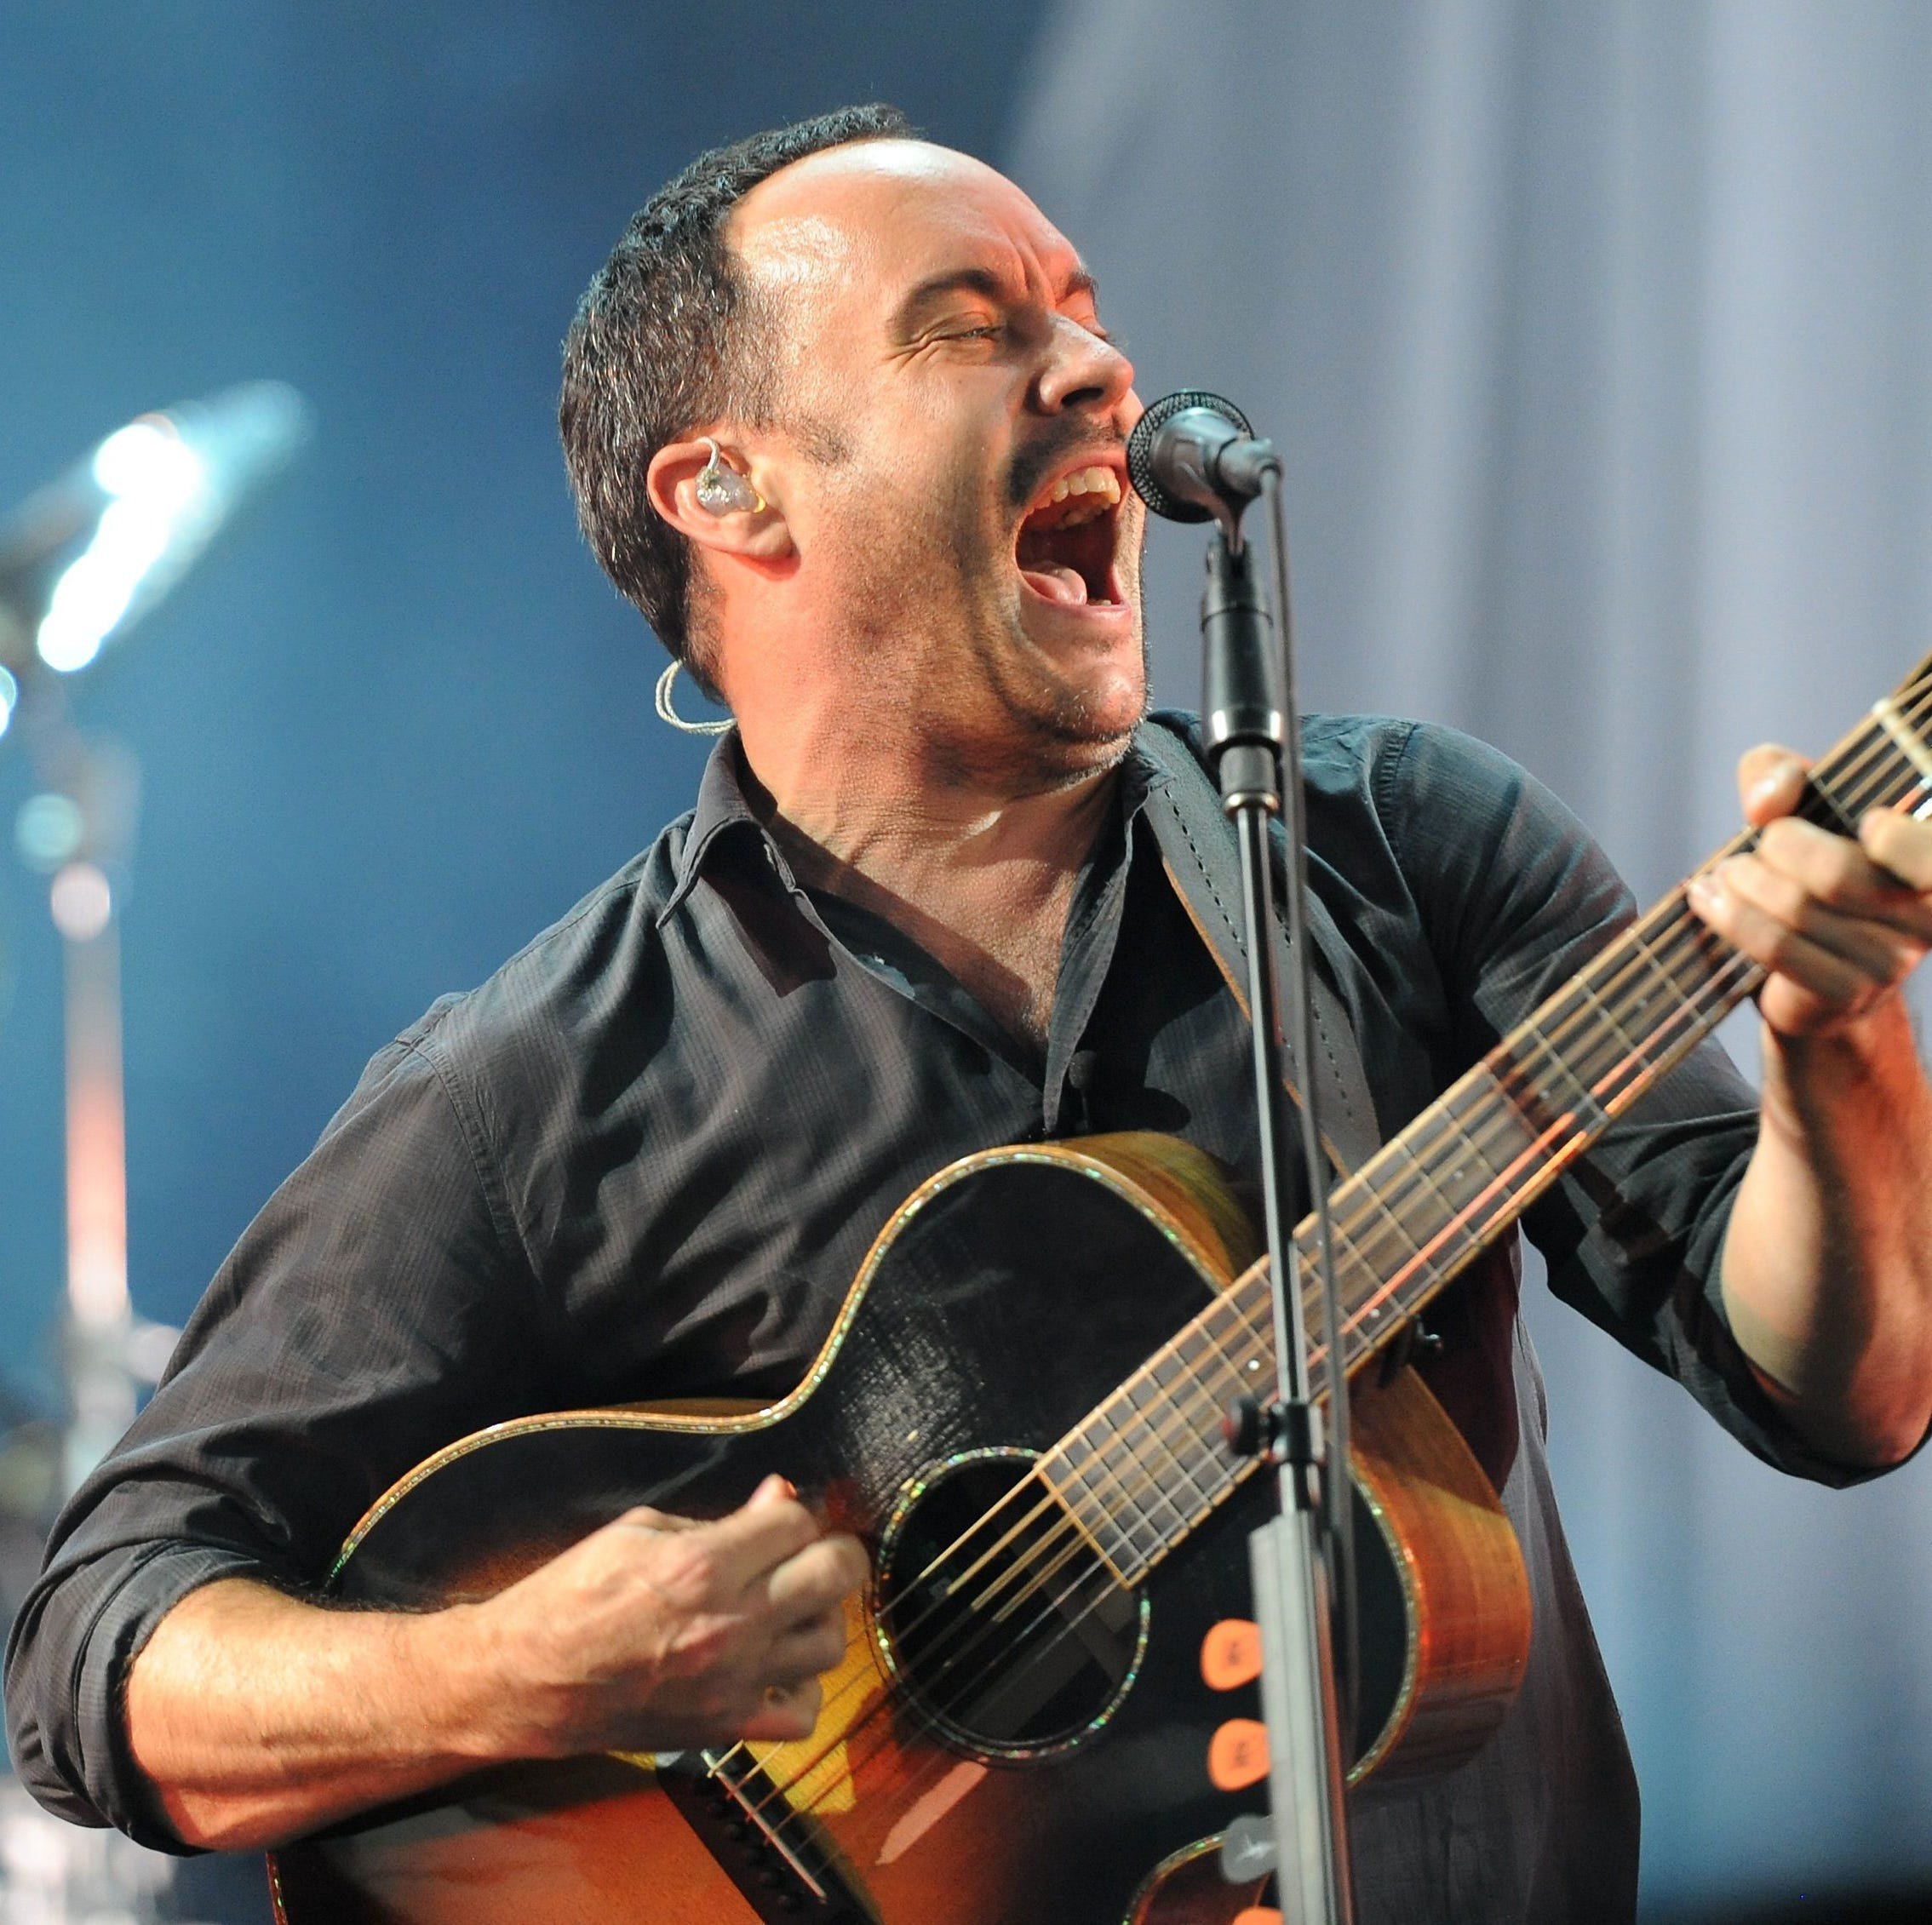 'Crash into' the Dave Matthews Band's first ever show in Pensacola at the Bay Center | Seven days out